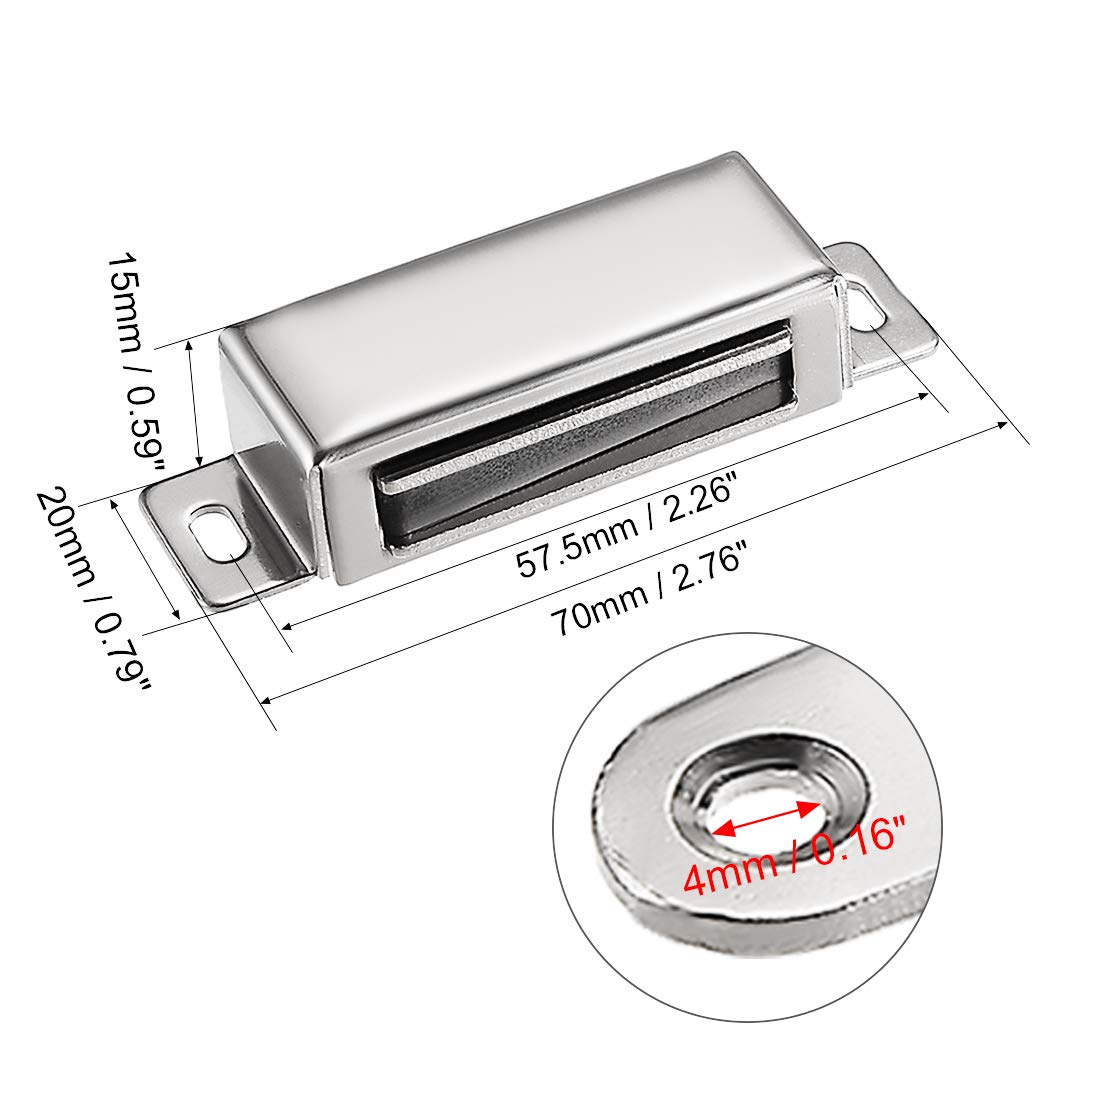 uxcell 5Pcs Door Cabinet Magnetic Catch Magnet Latch Closure Stainless Steel 97mm Length a18080300ux0123